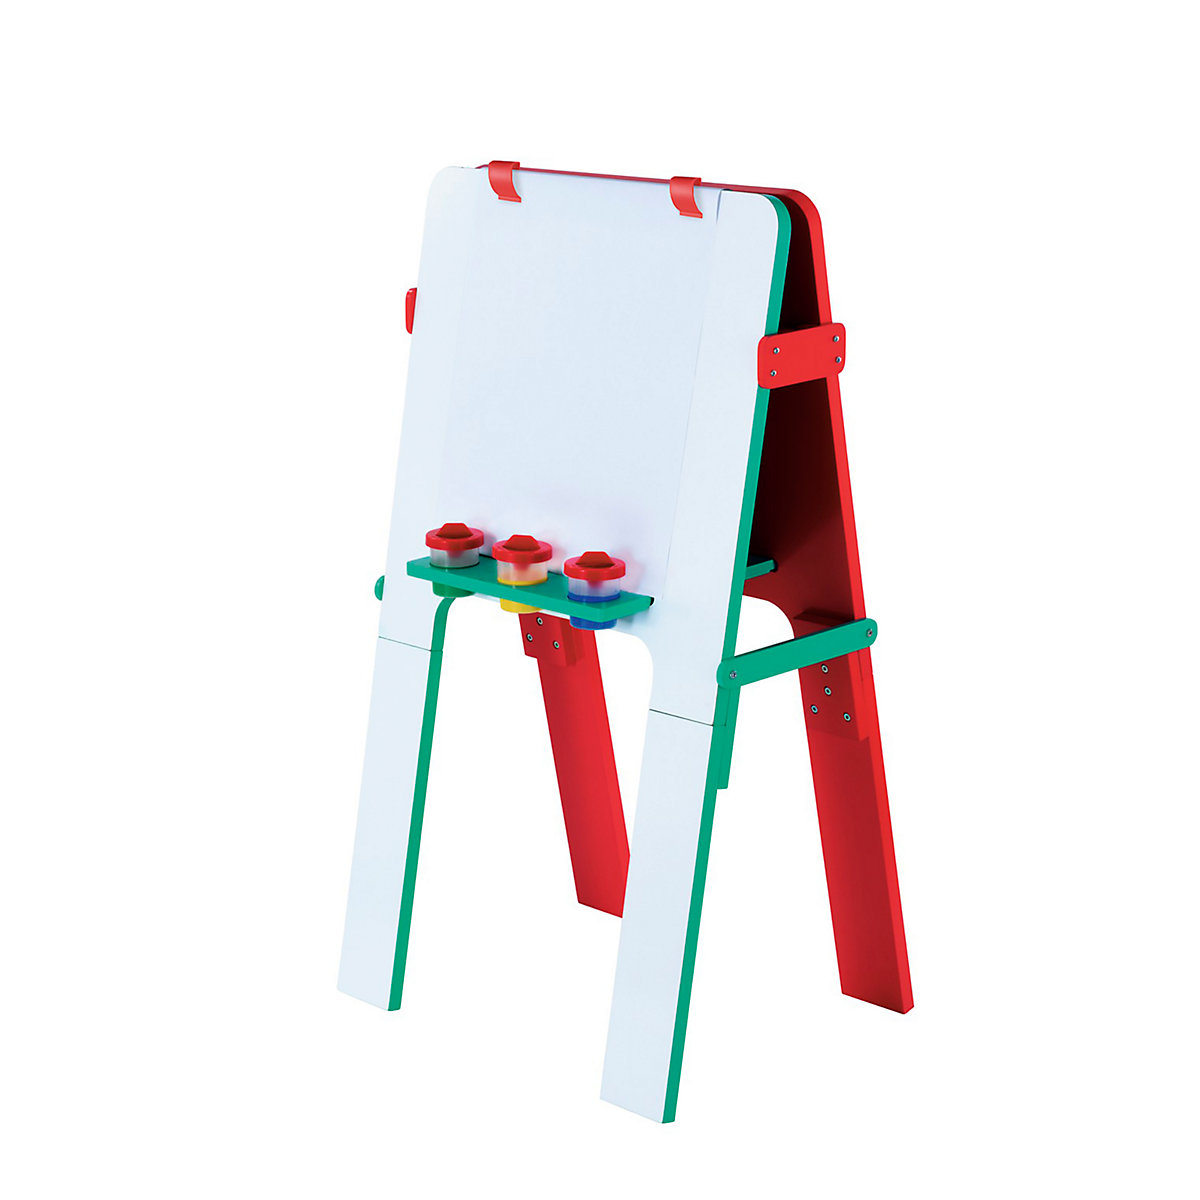 New ELC Boys and Girls Double Sided Wooden Easel Toy From 3 years - Early Learning Centre Gifts